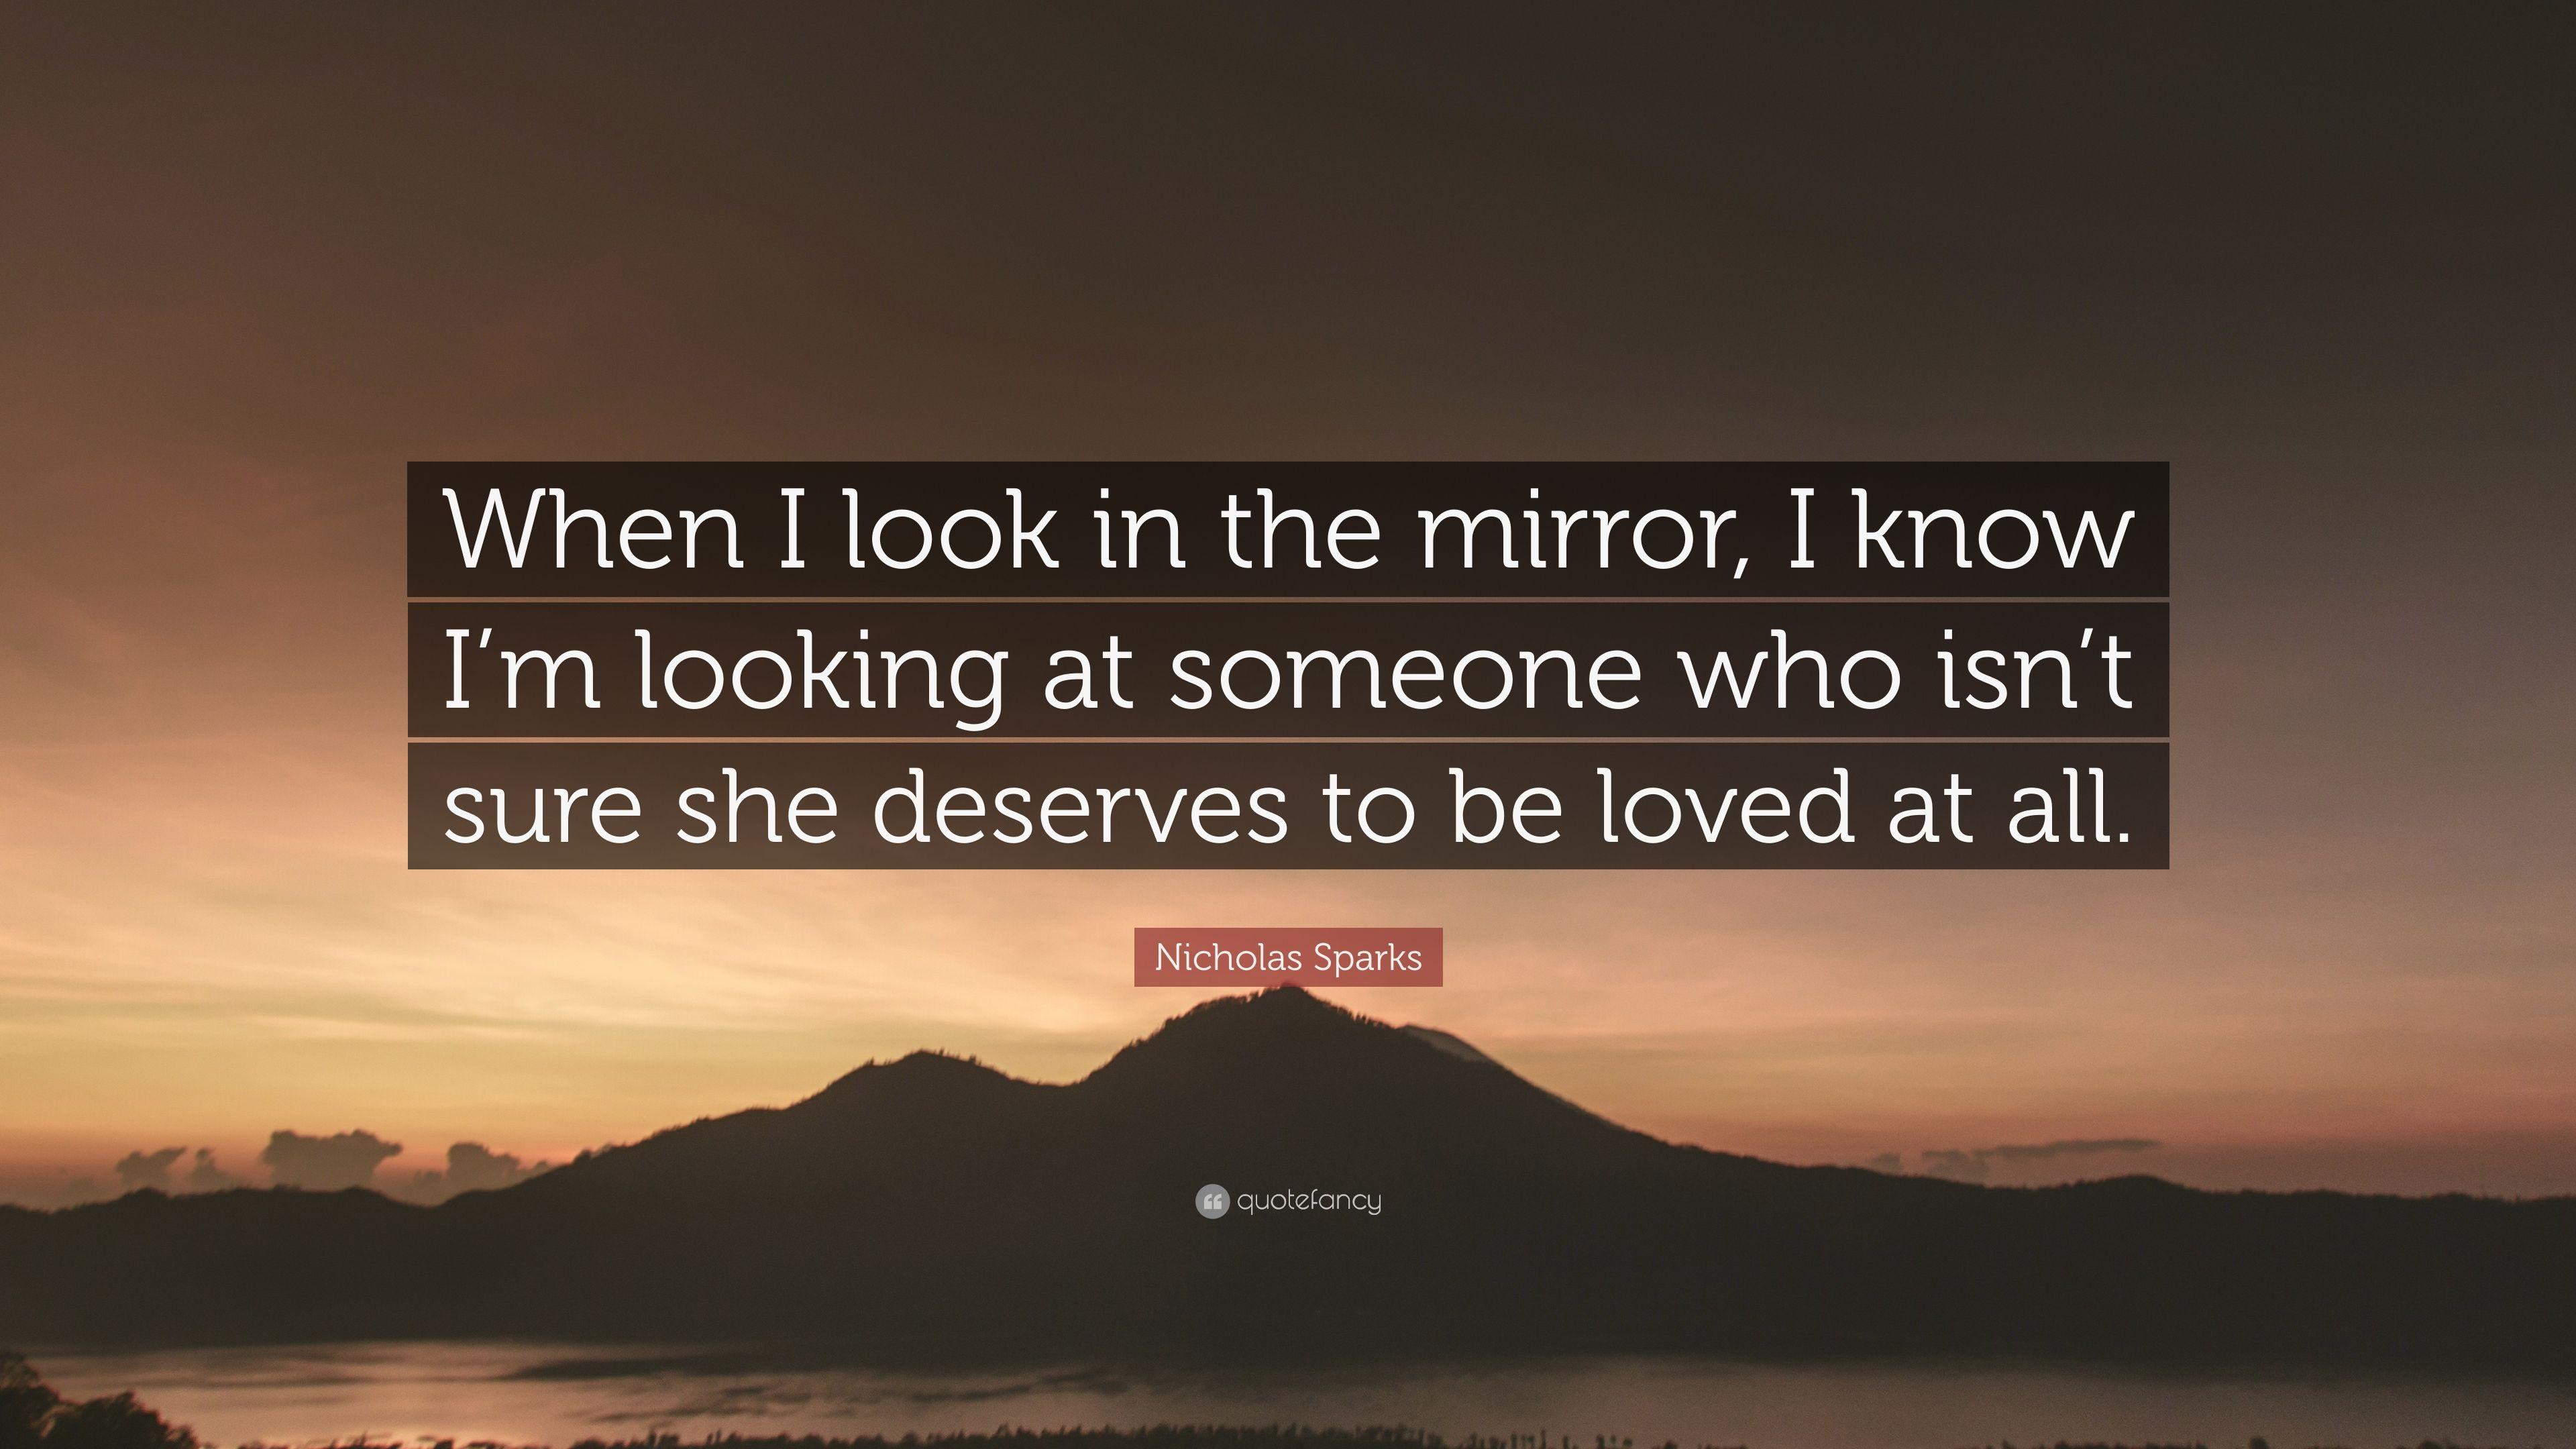 Nicholas Sparks Quote When I Look In The Mirror I Know Im